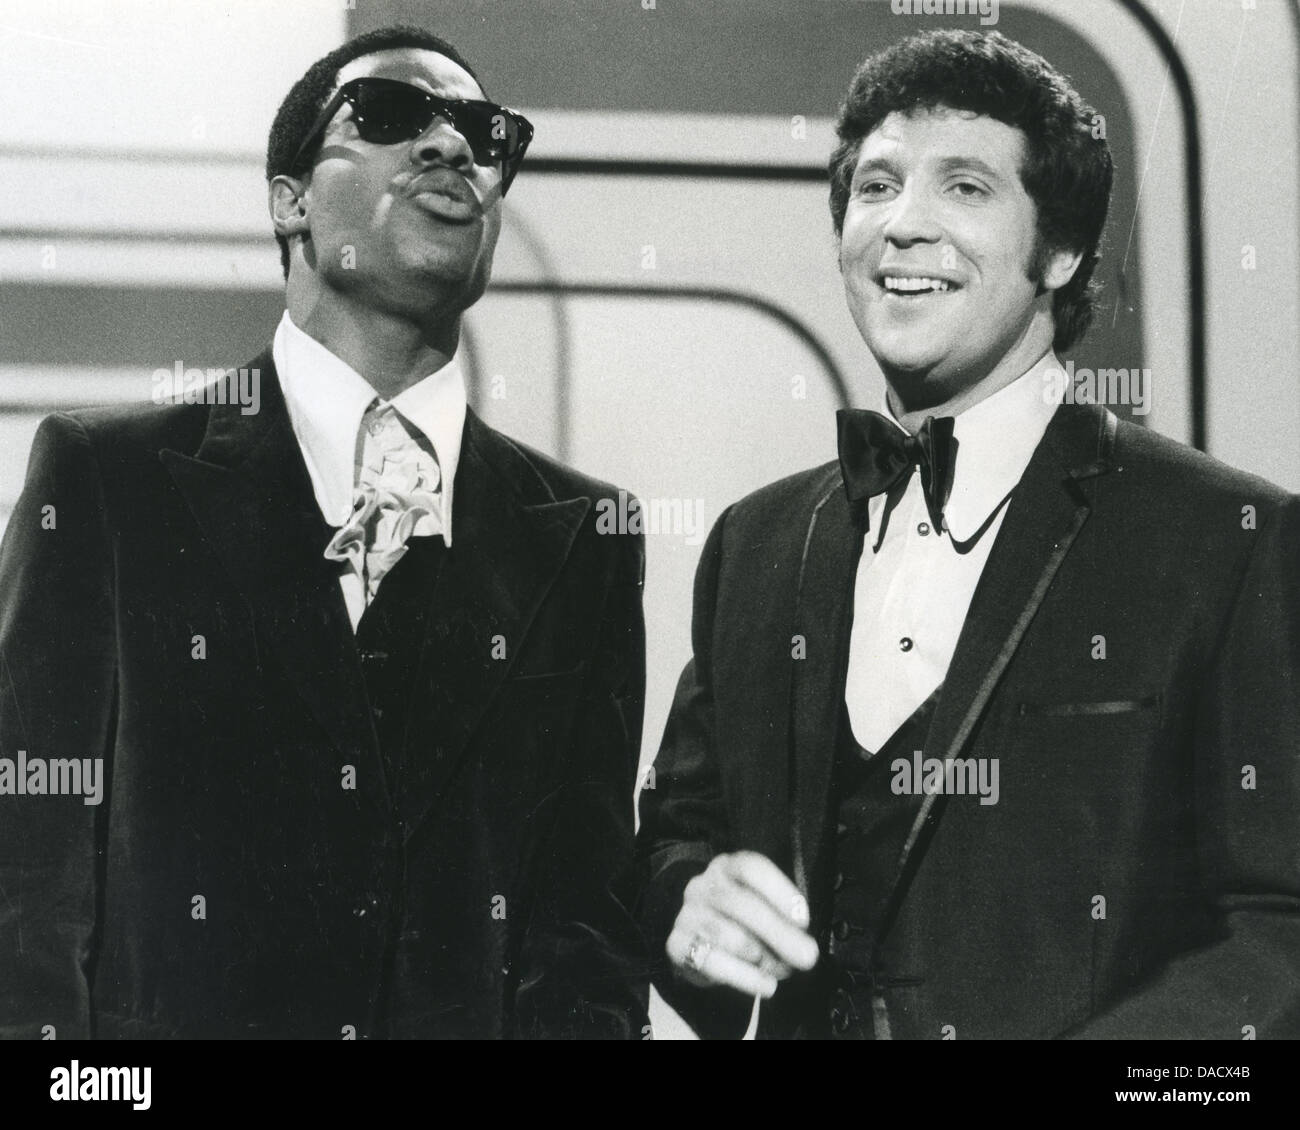 STEVIE WONDER  at left with Tom Jones on the 'This Is Tom Jones' TV series about 1970 - Stock Image